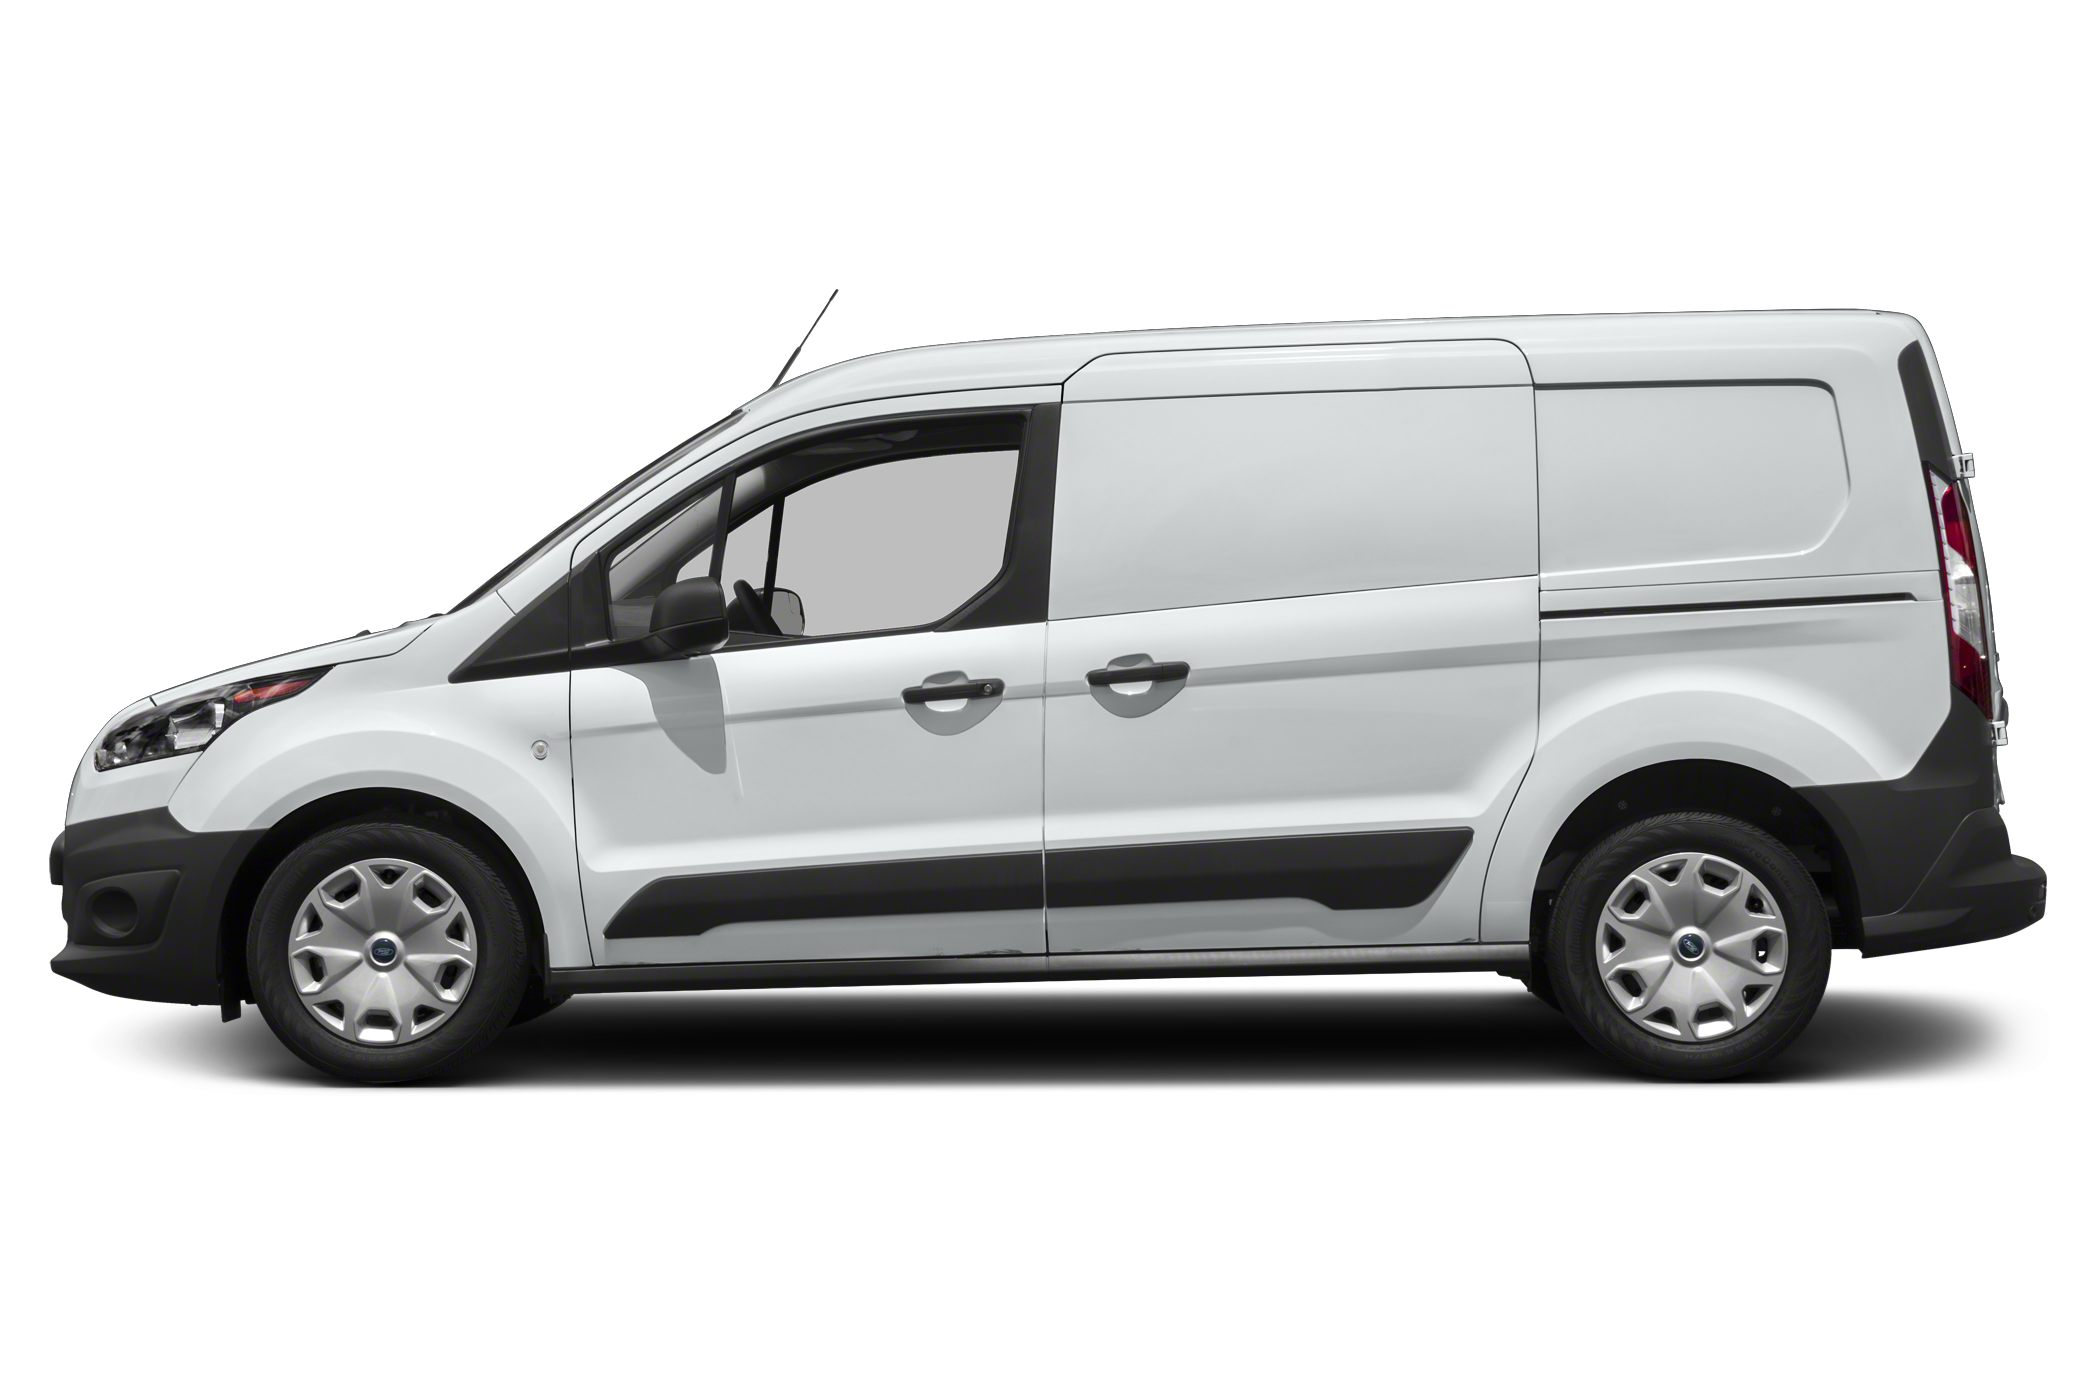 Honda Cargo Van >> Ford Transit Connect Cargo Van Models, Price, Specs, Reviews | Cars.com